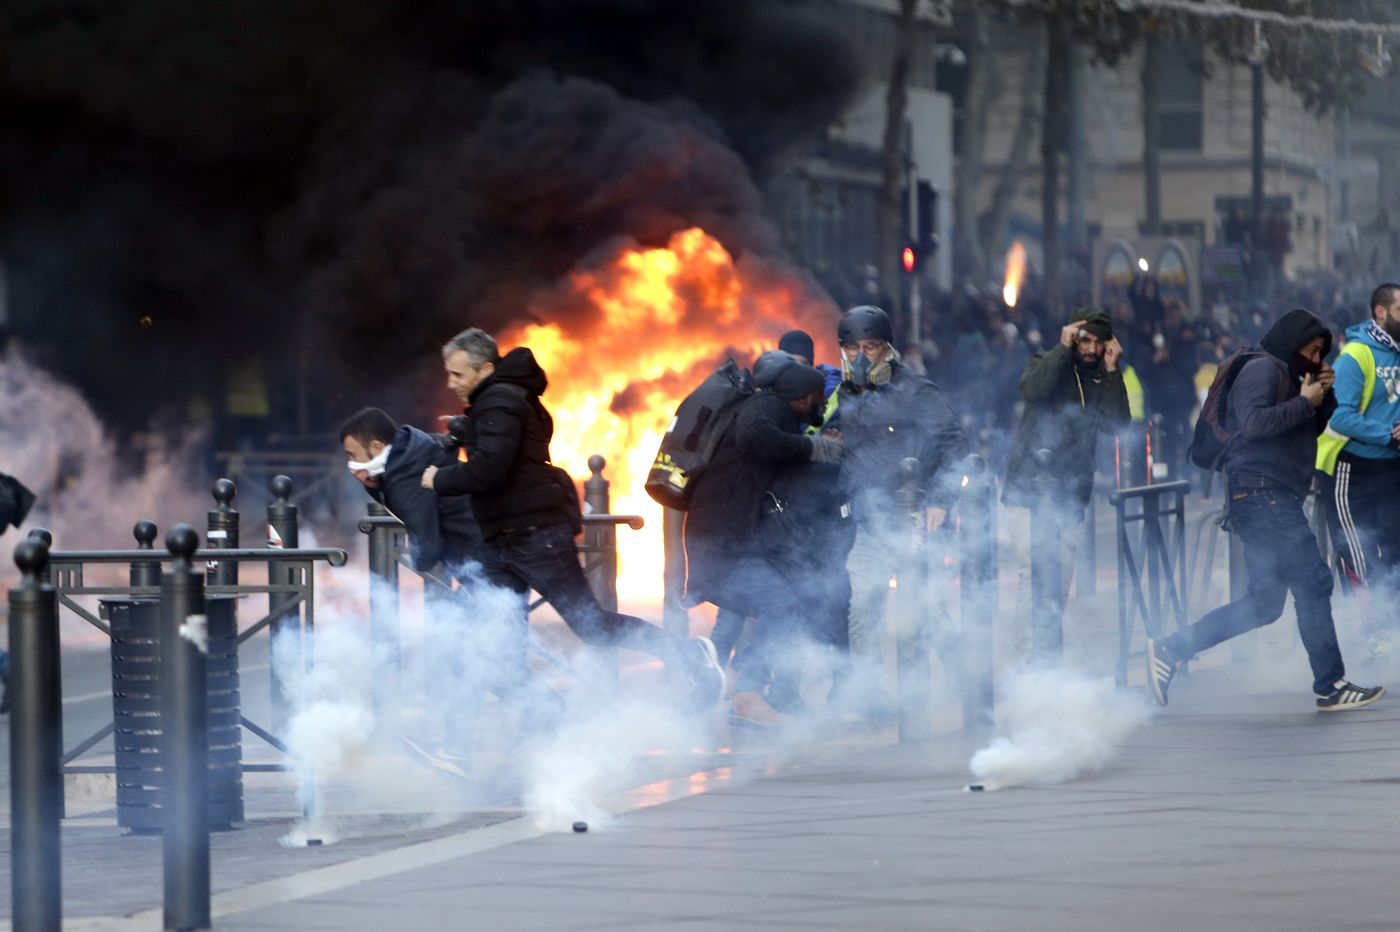 Is France showing us what America's next civil war will look like? | Will Bunch